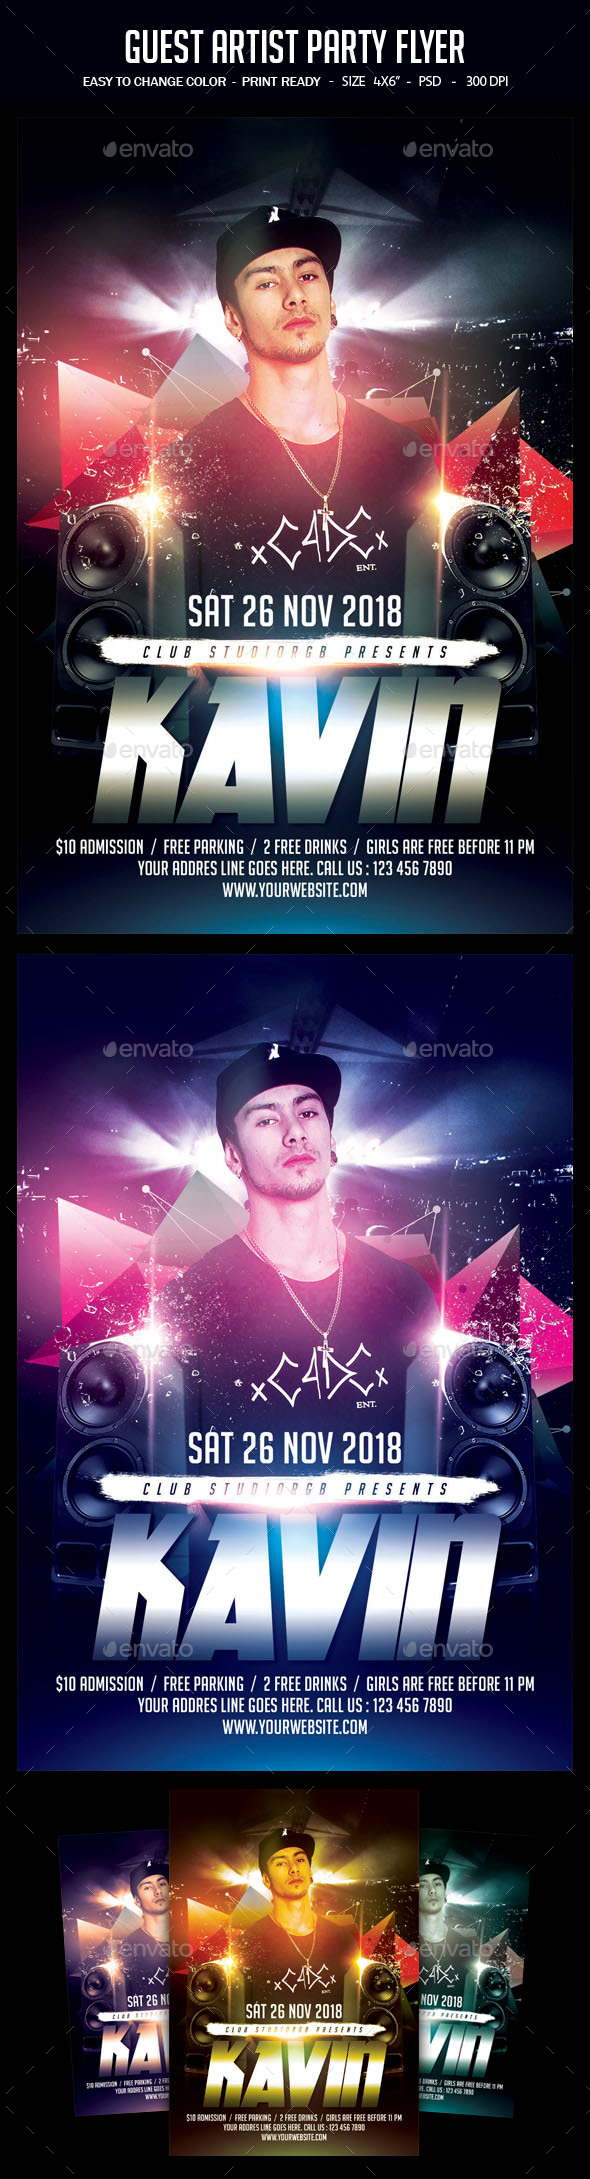 Guest Artist Party Flyer - Clubs & Parties Events